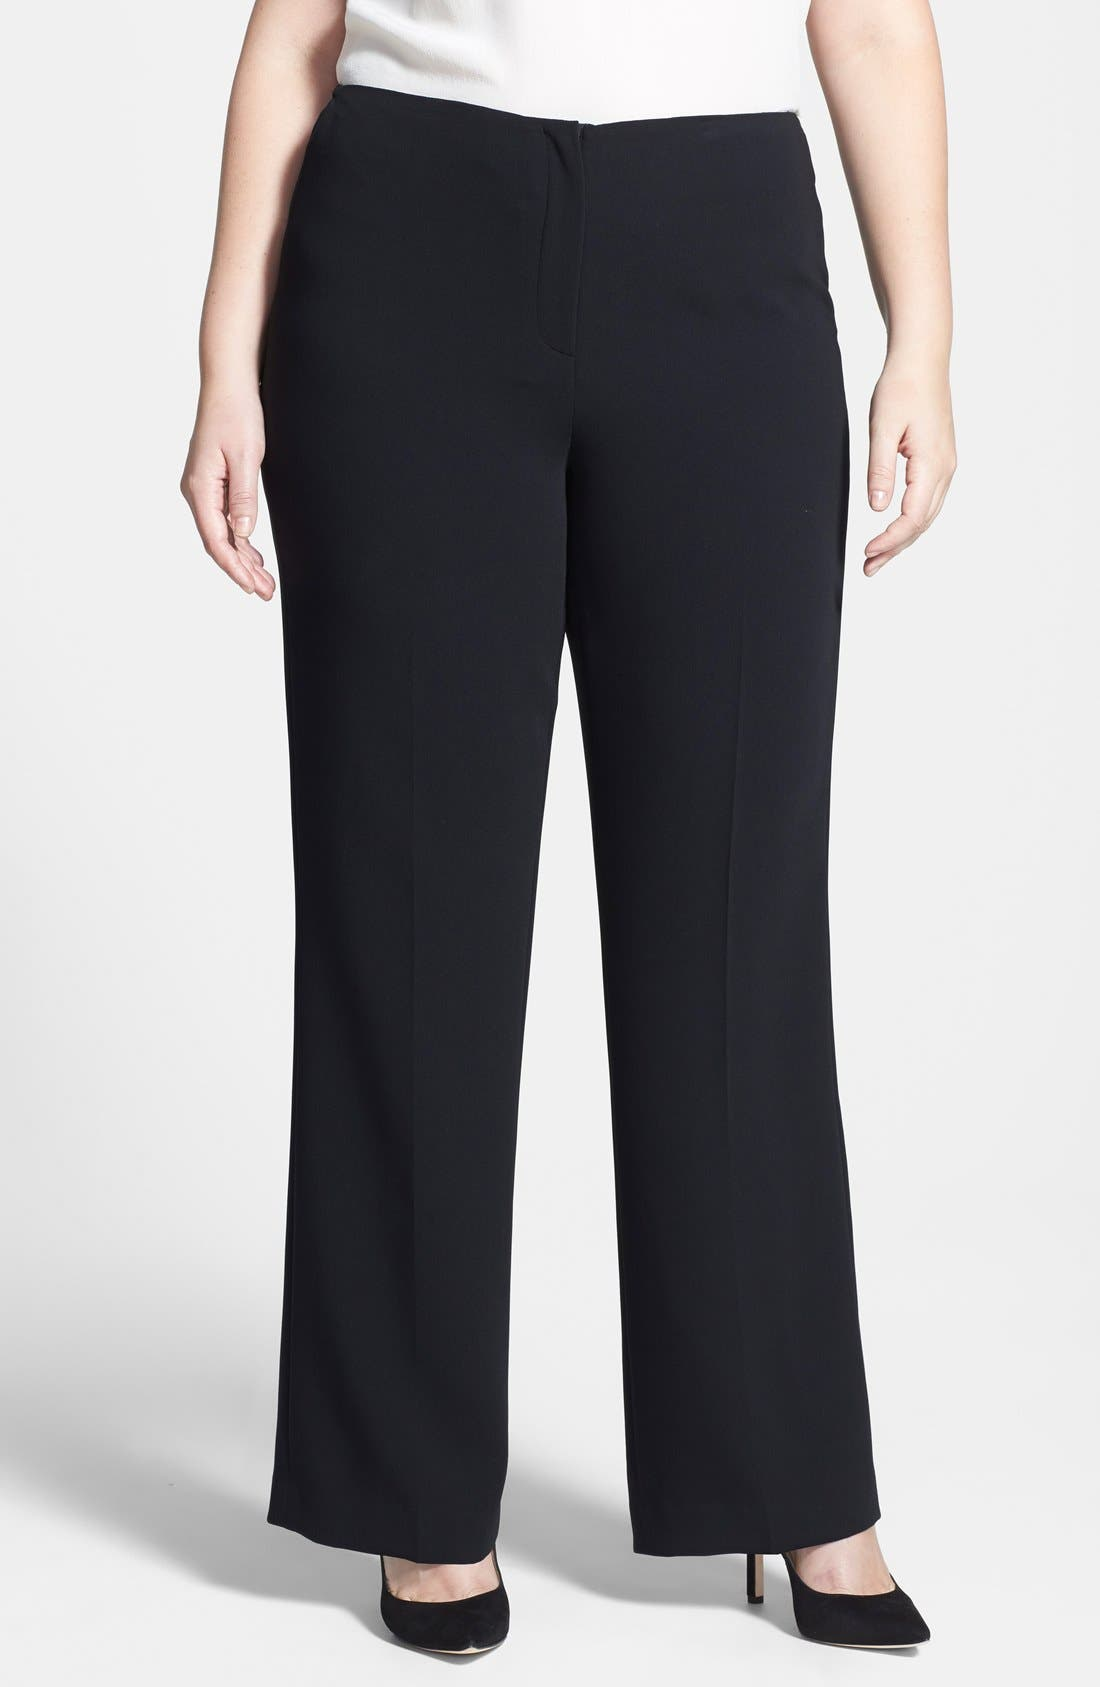 Alternate Image 1 Selected - Louben Straight Leg Pants (Plus Size)